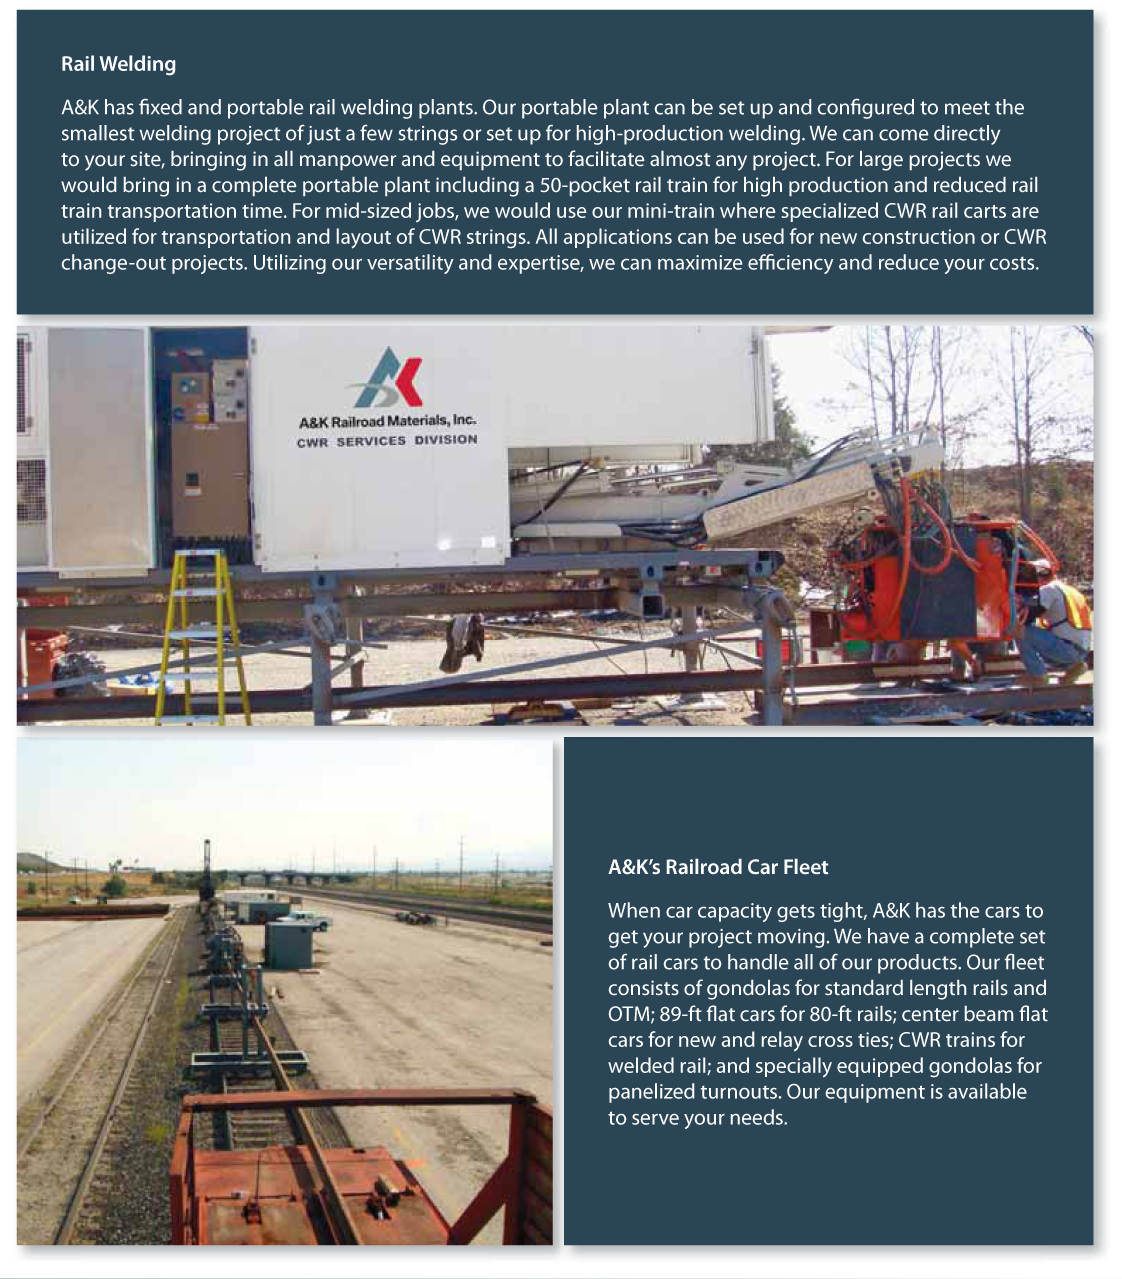 Continuous Welded Rail (CWR) | A&K Railroad Materials, Inc